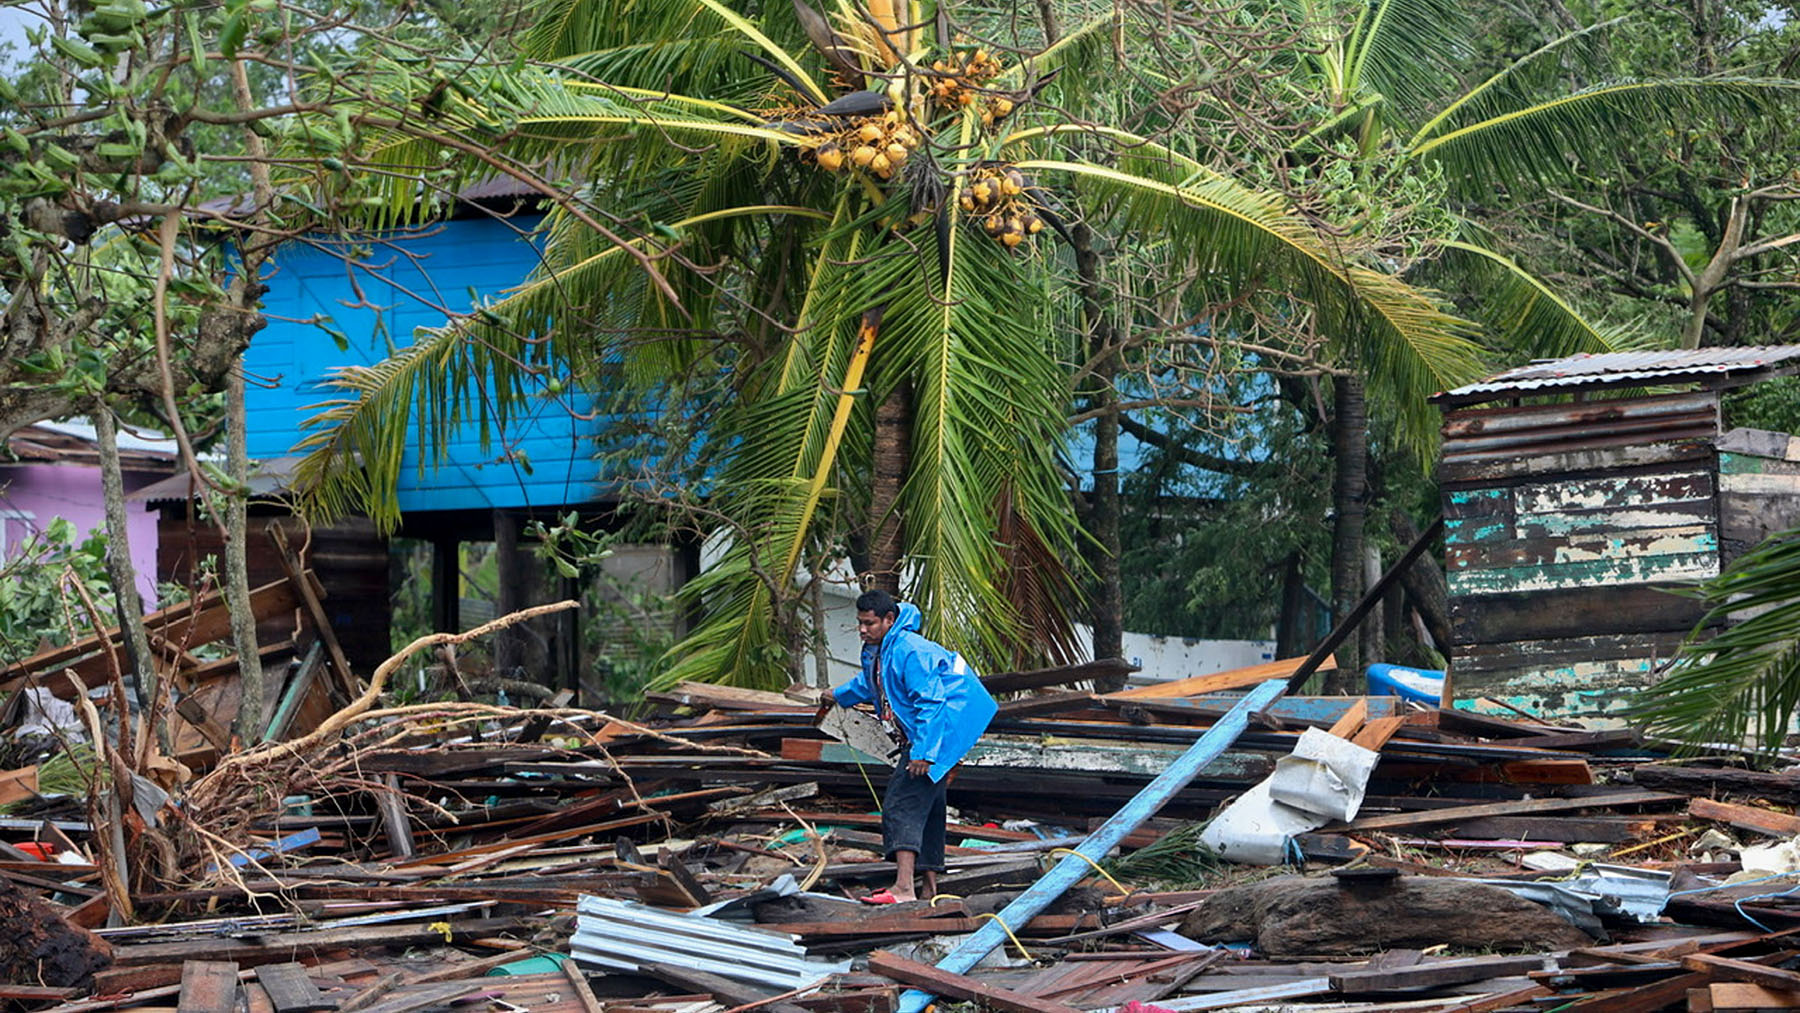 Damage from Hurricane Eta in Puerto Cabezas, Nicaragua, as seen on November 4, 2020. Health providers in the country, and in neighboring Honduras, have requested medical aid. (Photo by Inti OCON / AFP)